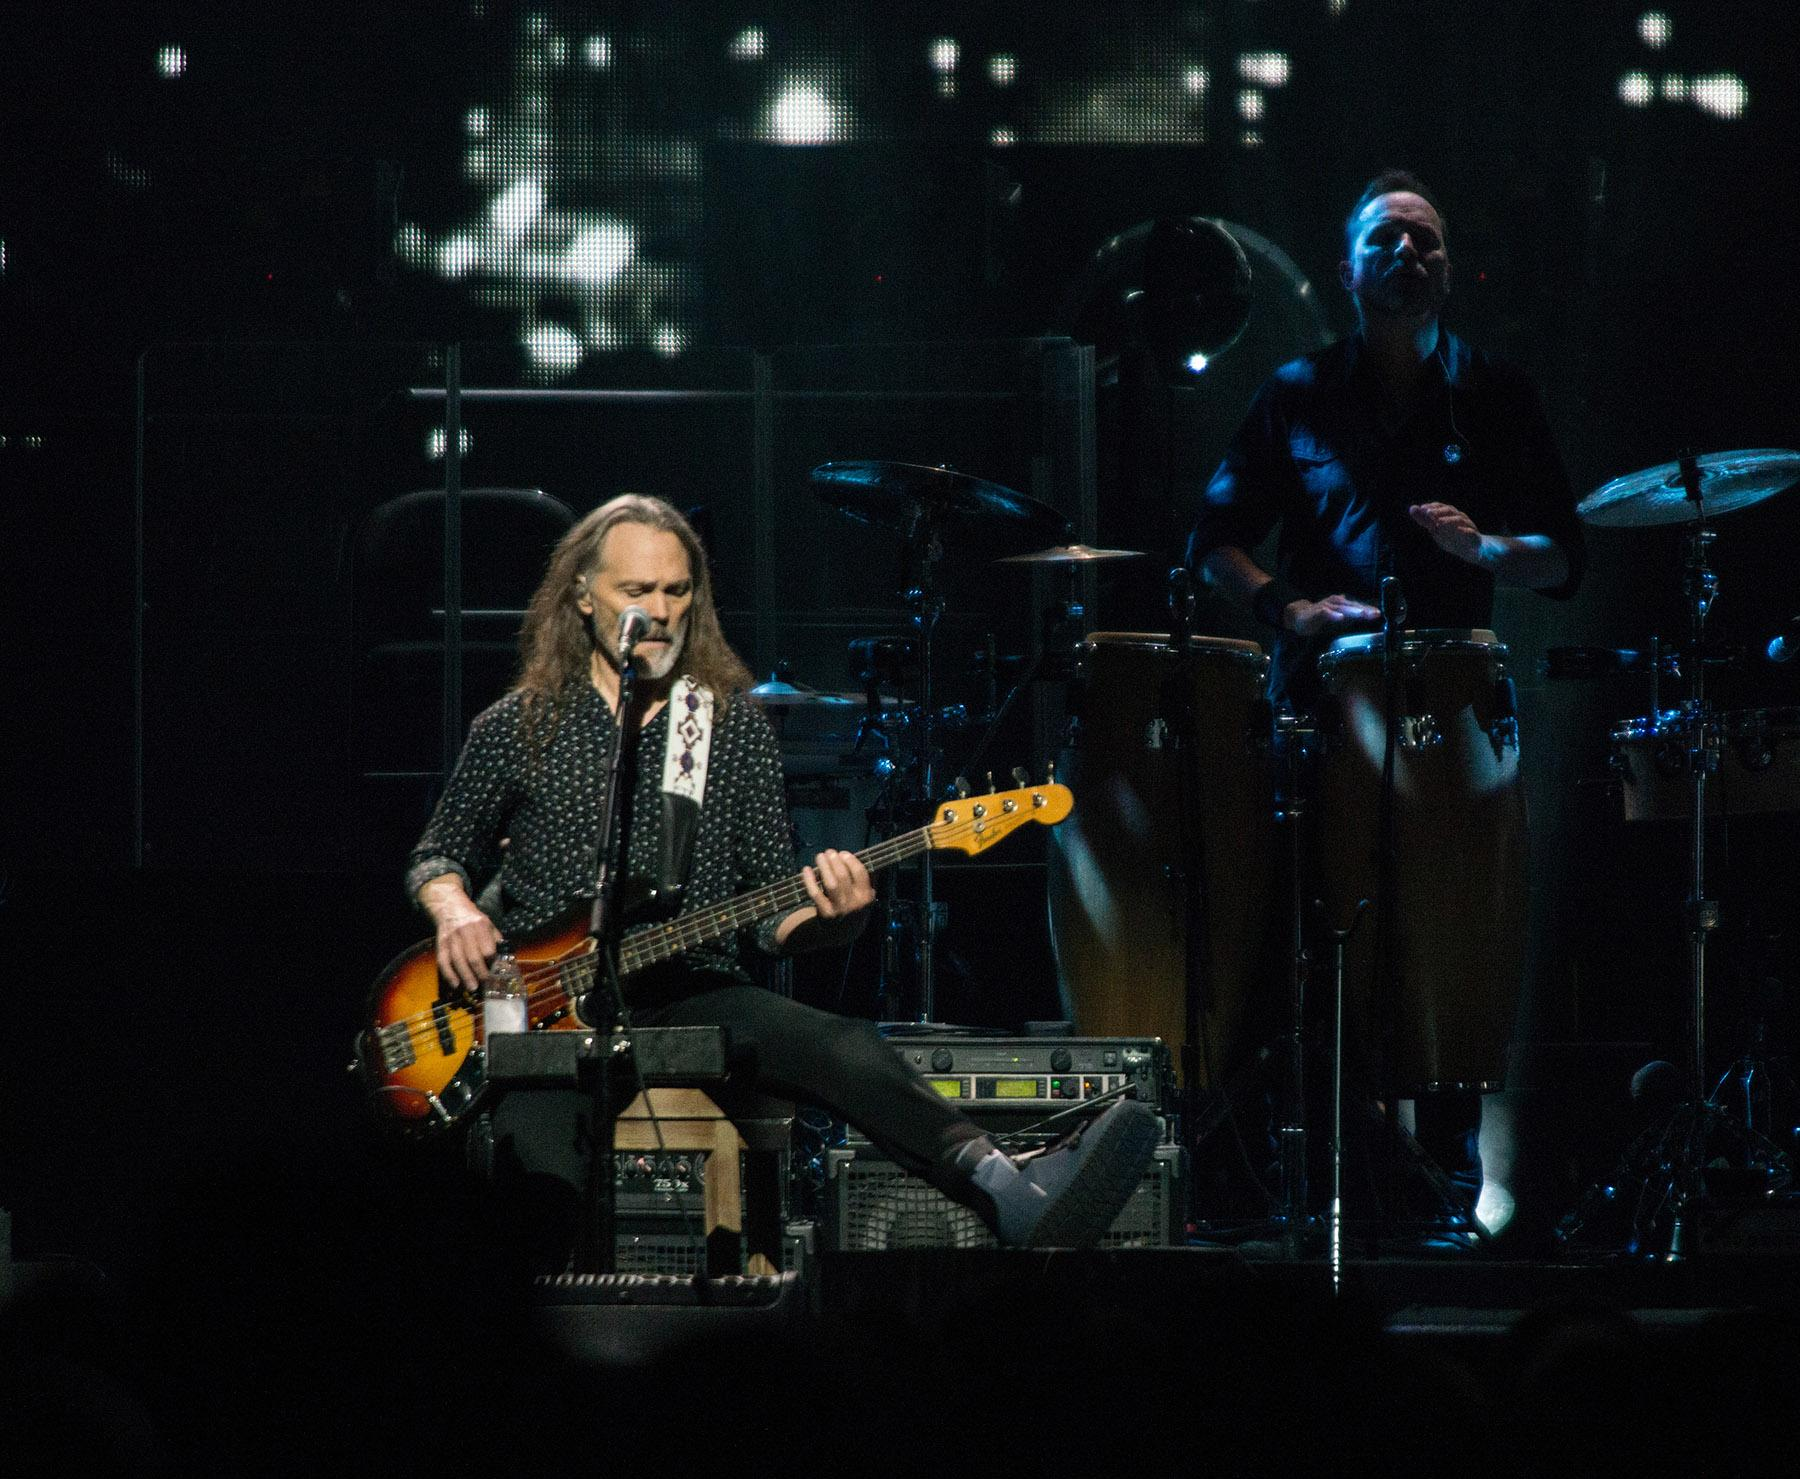 Iconic rock group the Eagles made a stop at Portland's Moda Center on Tuesday night, playing a night full of hits for a packed house of fans. The band (Don Henley, Joe Walsh, Timothy B. Schmit) were joined on stage by Deacon Frey, the son of the late founding member Glenn Frey, and country music guitarist Vince Gill. (KATU Photo by Tristan Fortsch on May 22, 2018)